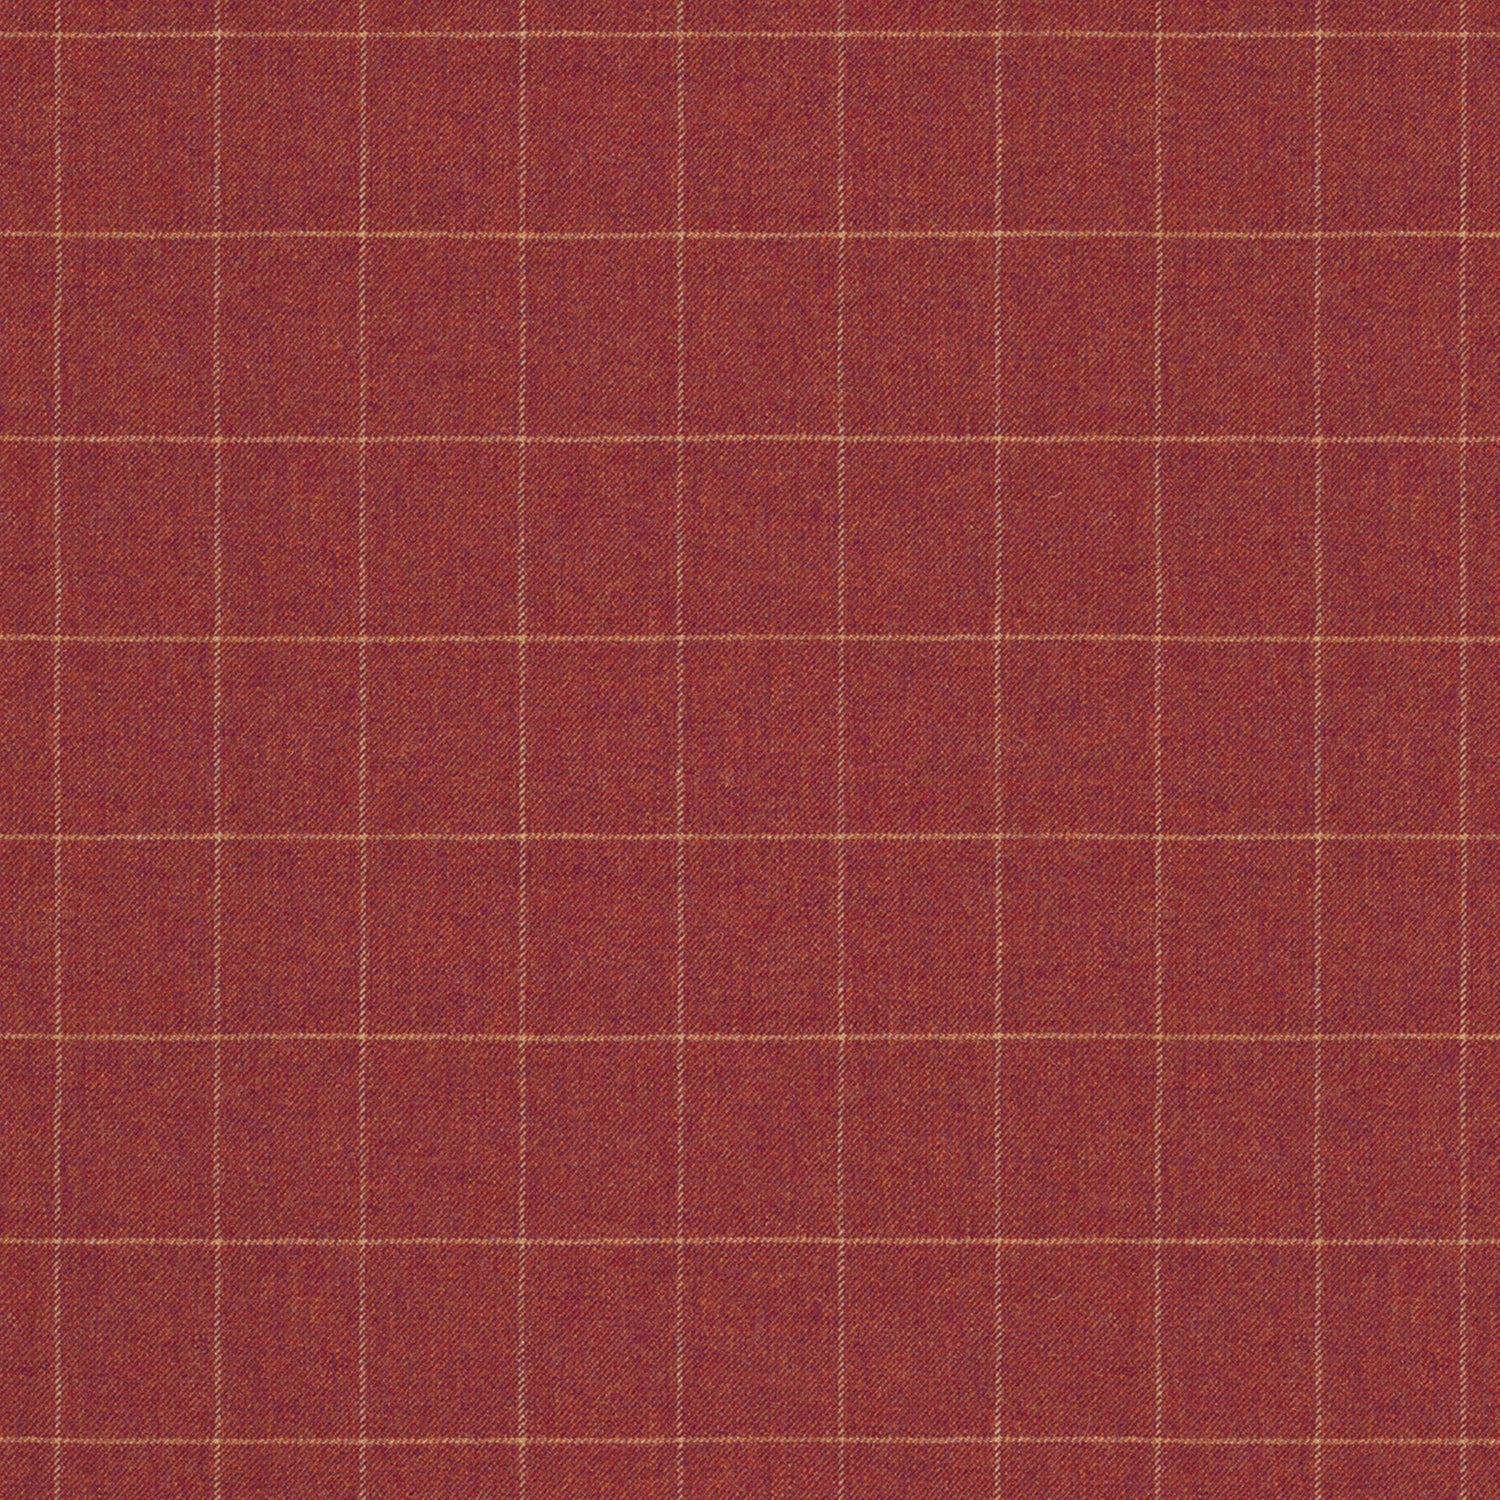 Fabric swatch of a red Scottish wool windowpane check fabric for curtains and upholstery